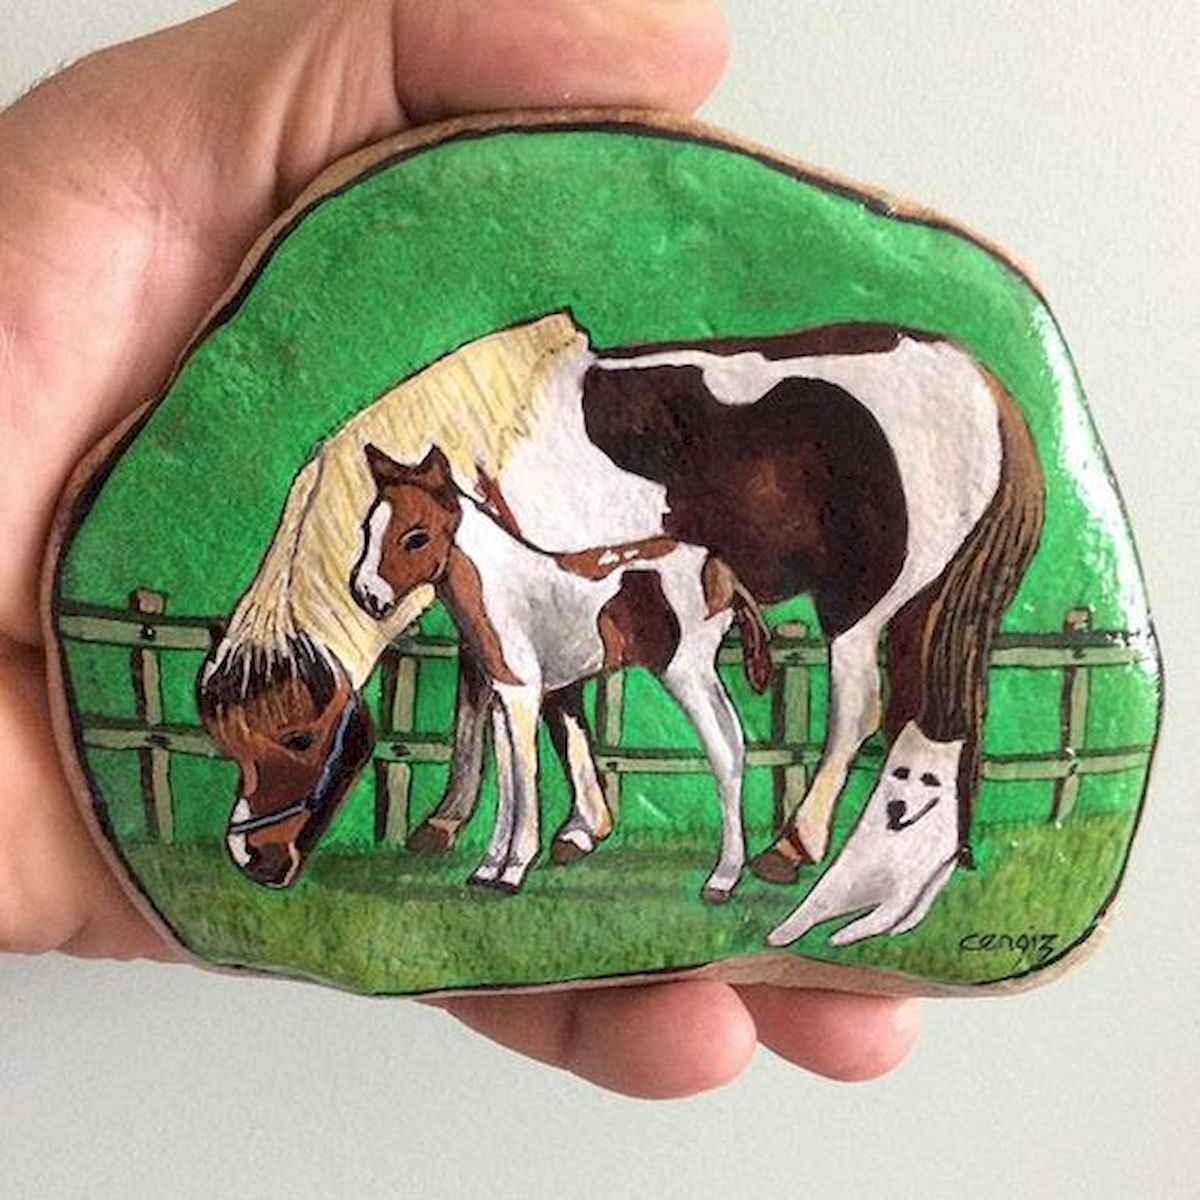 25 Suprising DIY Projects Painted Rocks Animals Horse for Summer Ideas (22)